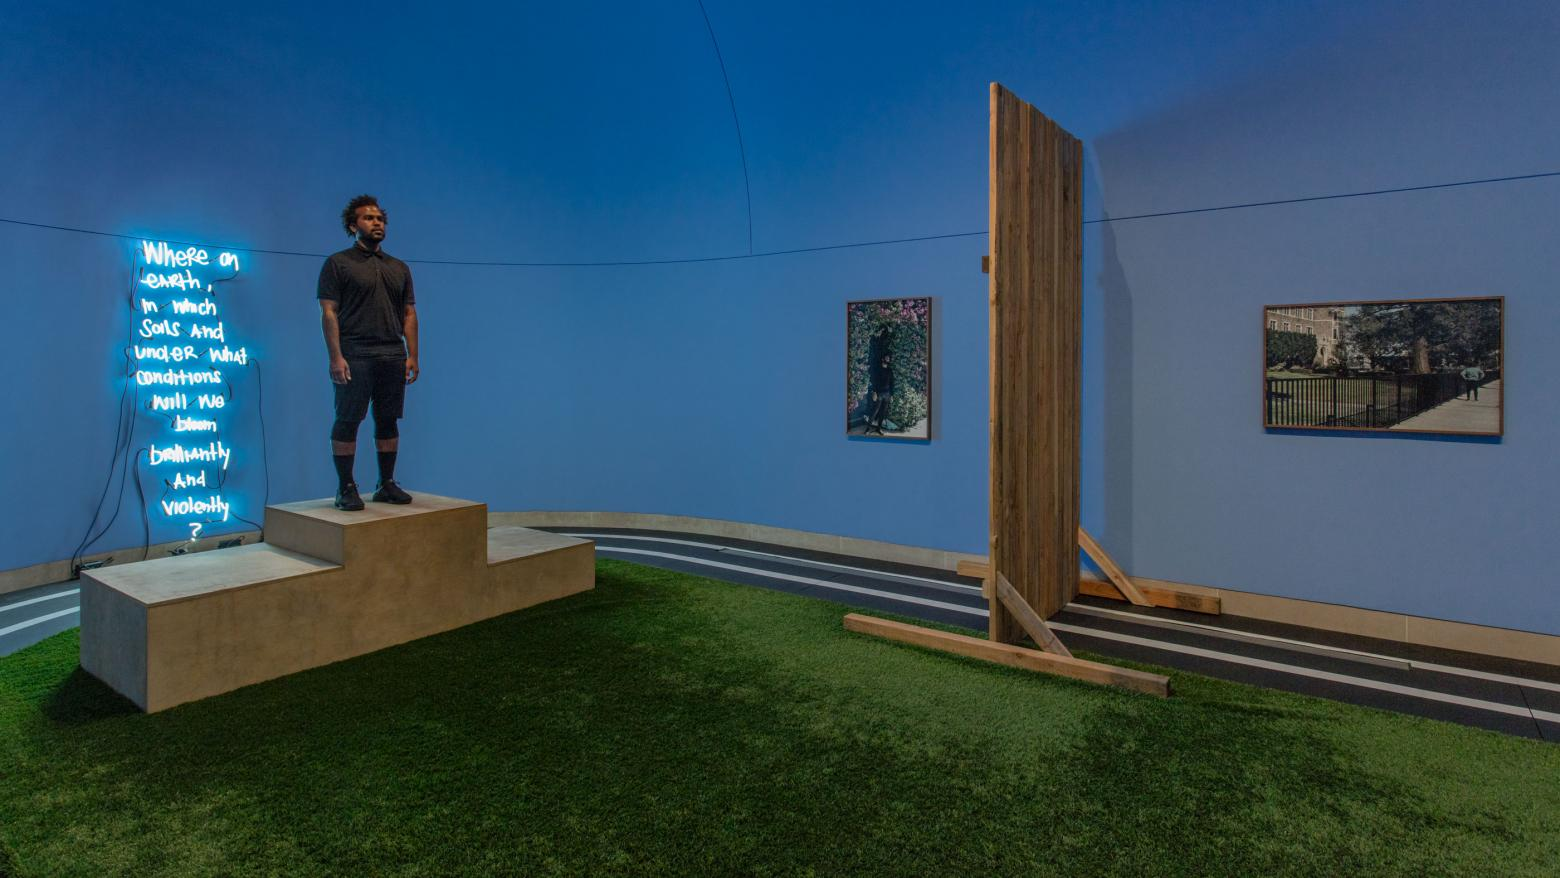 EJ Hill, Excellentia, Mollitia, Victoria, 2018. Installation view, Made in L.A. 2018, June 3-September 2, 2018, Hammer Museum, Los Angeles. Photo: Brian Forrest.